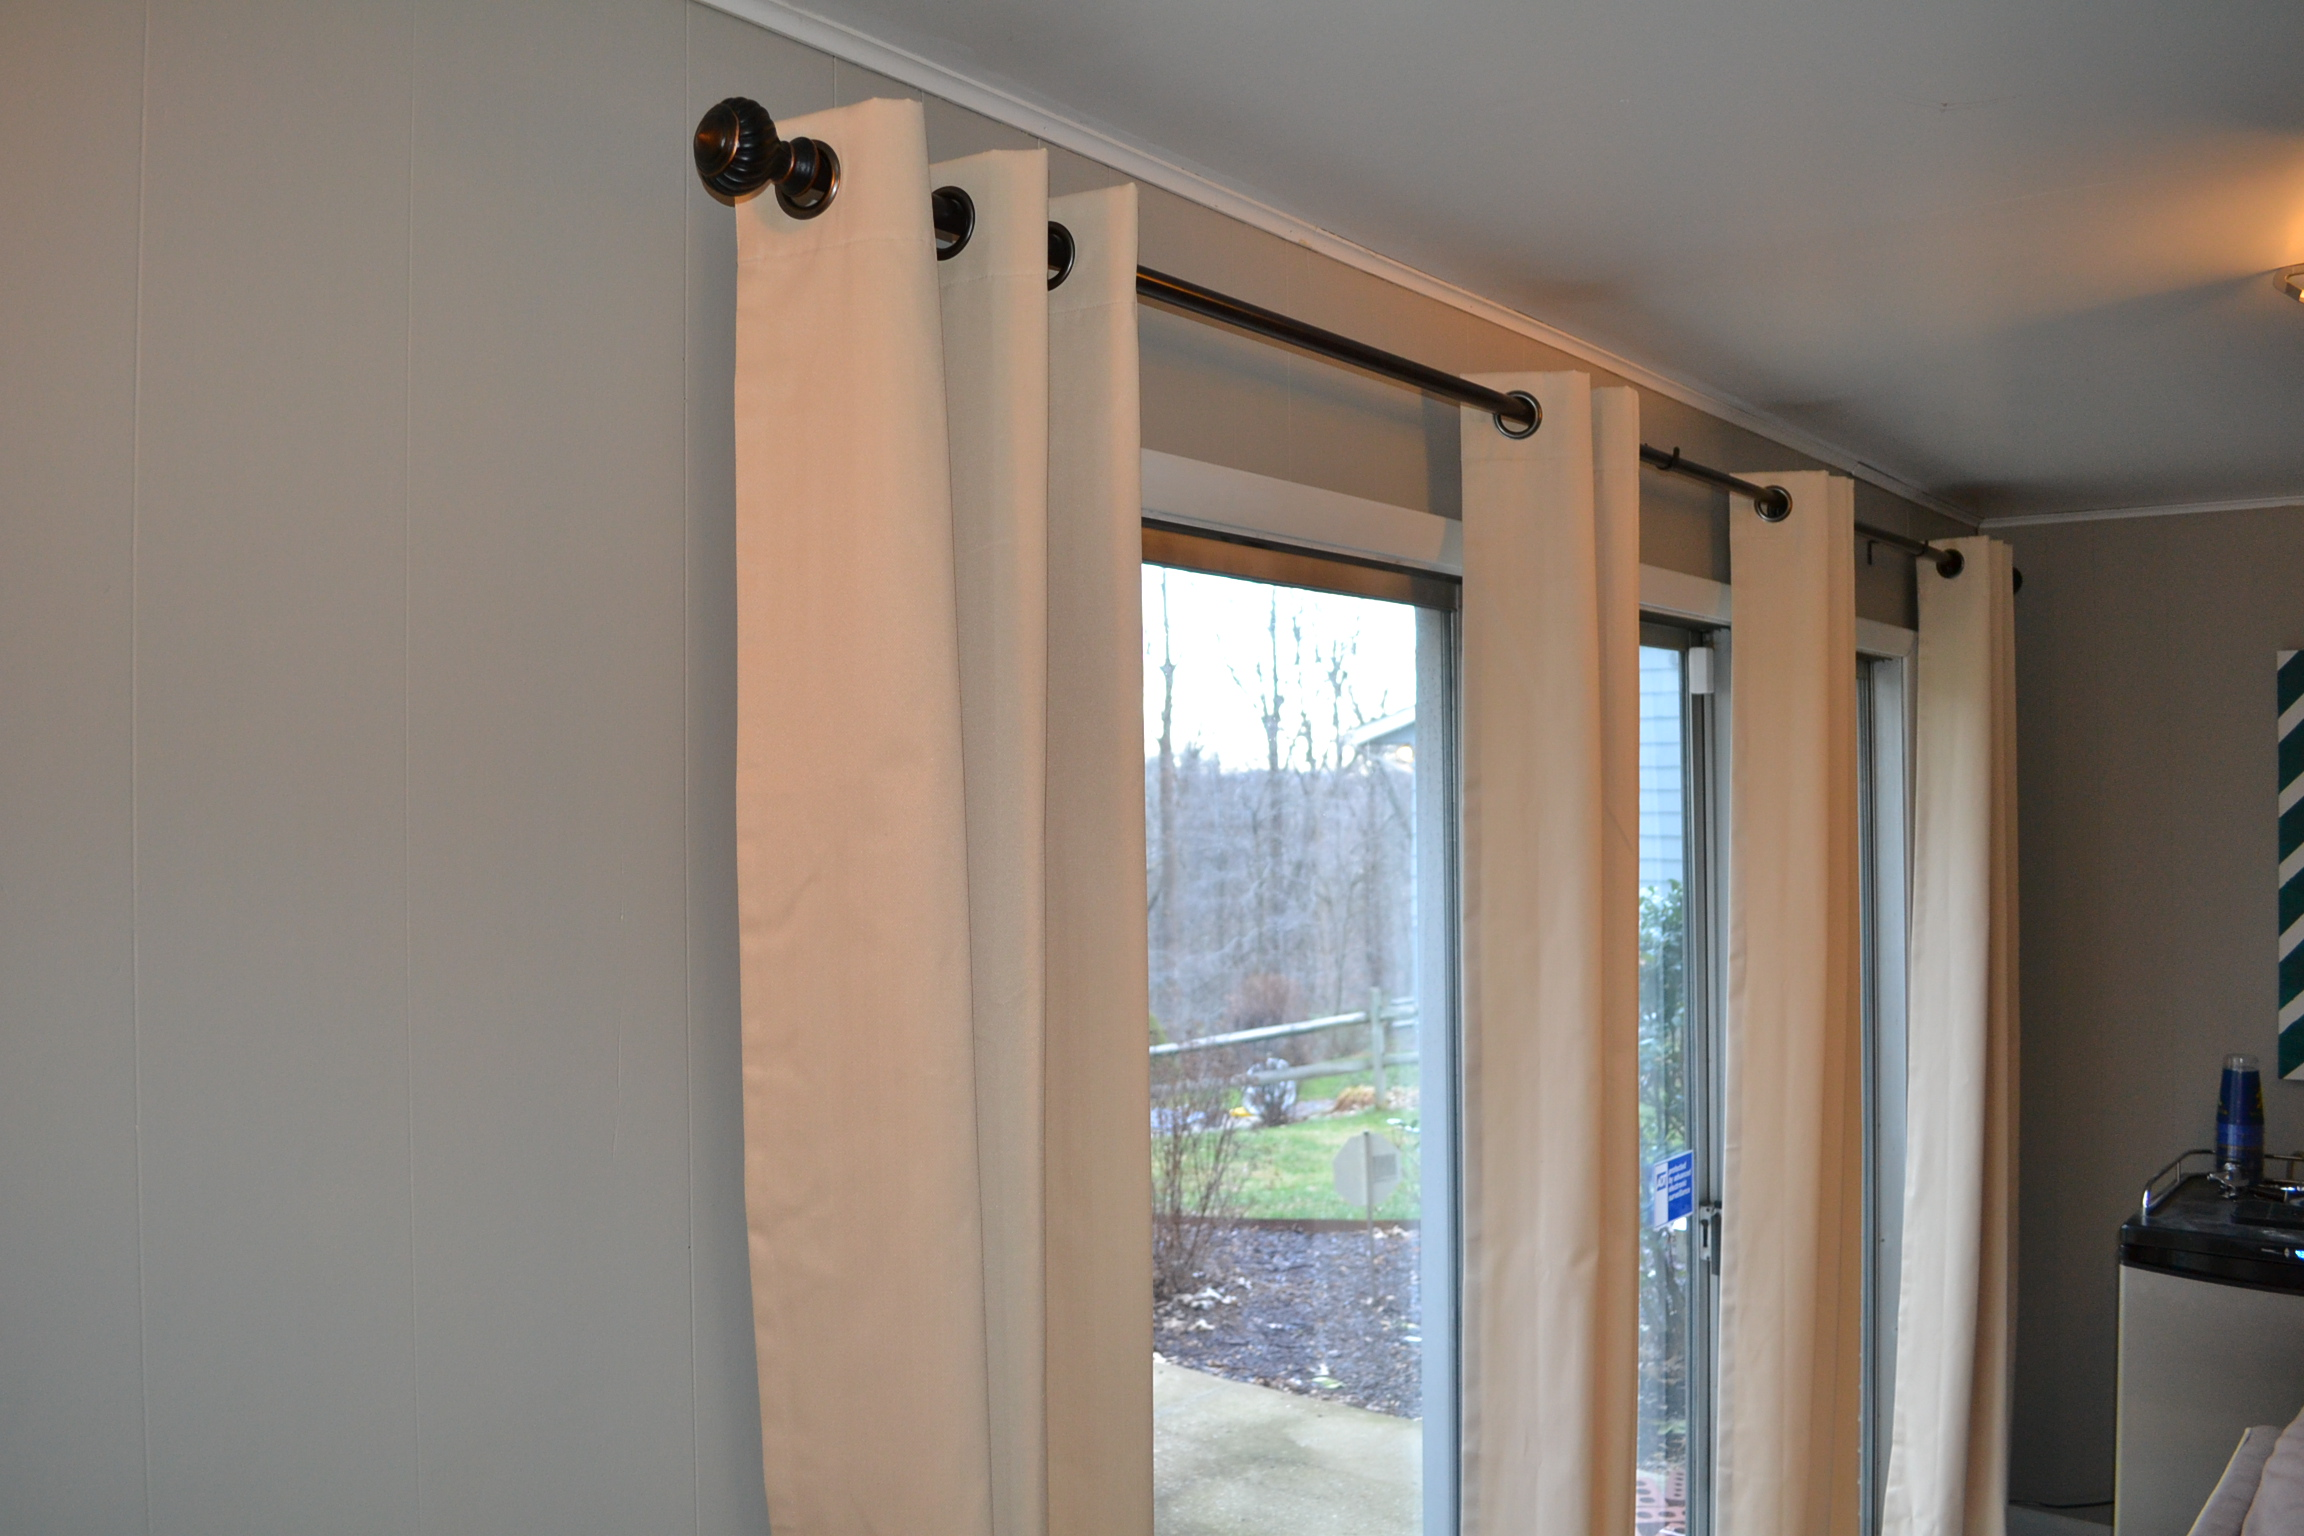 Here is a close up of the drapes against the grey walls much better